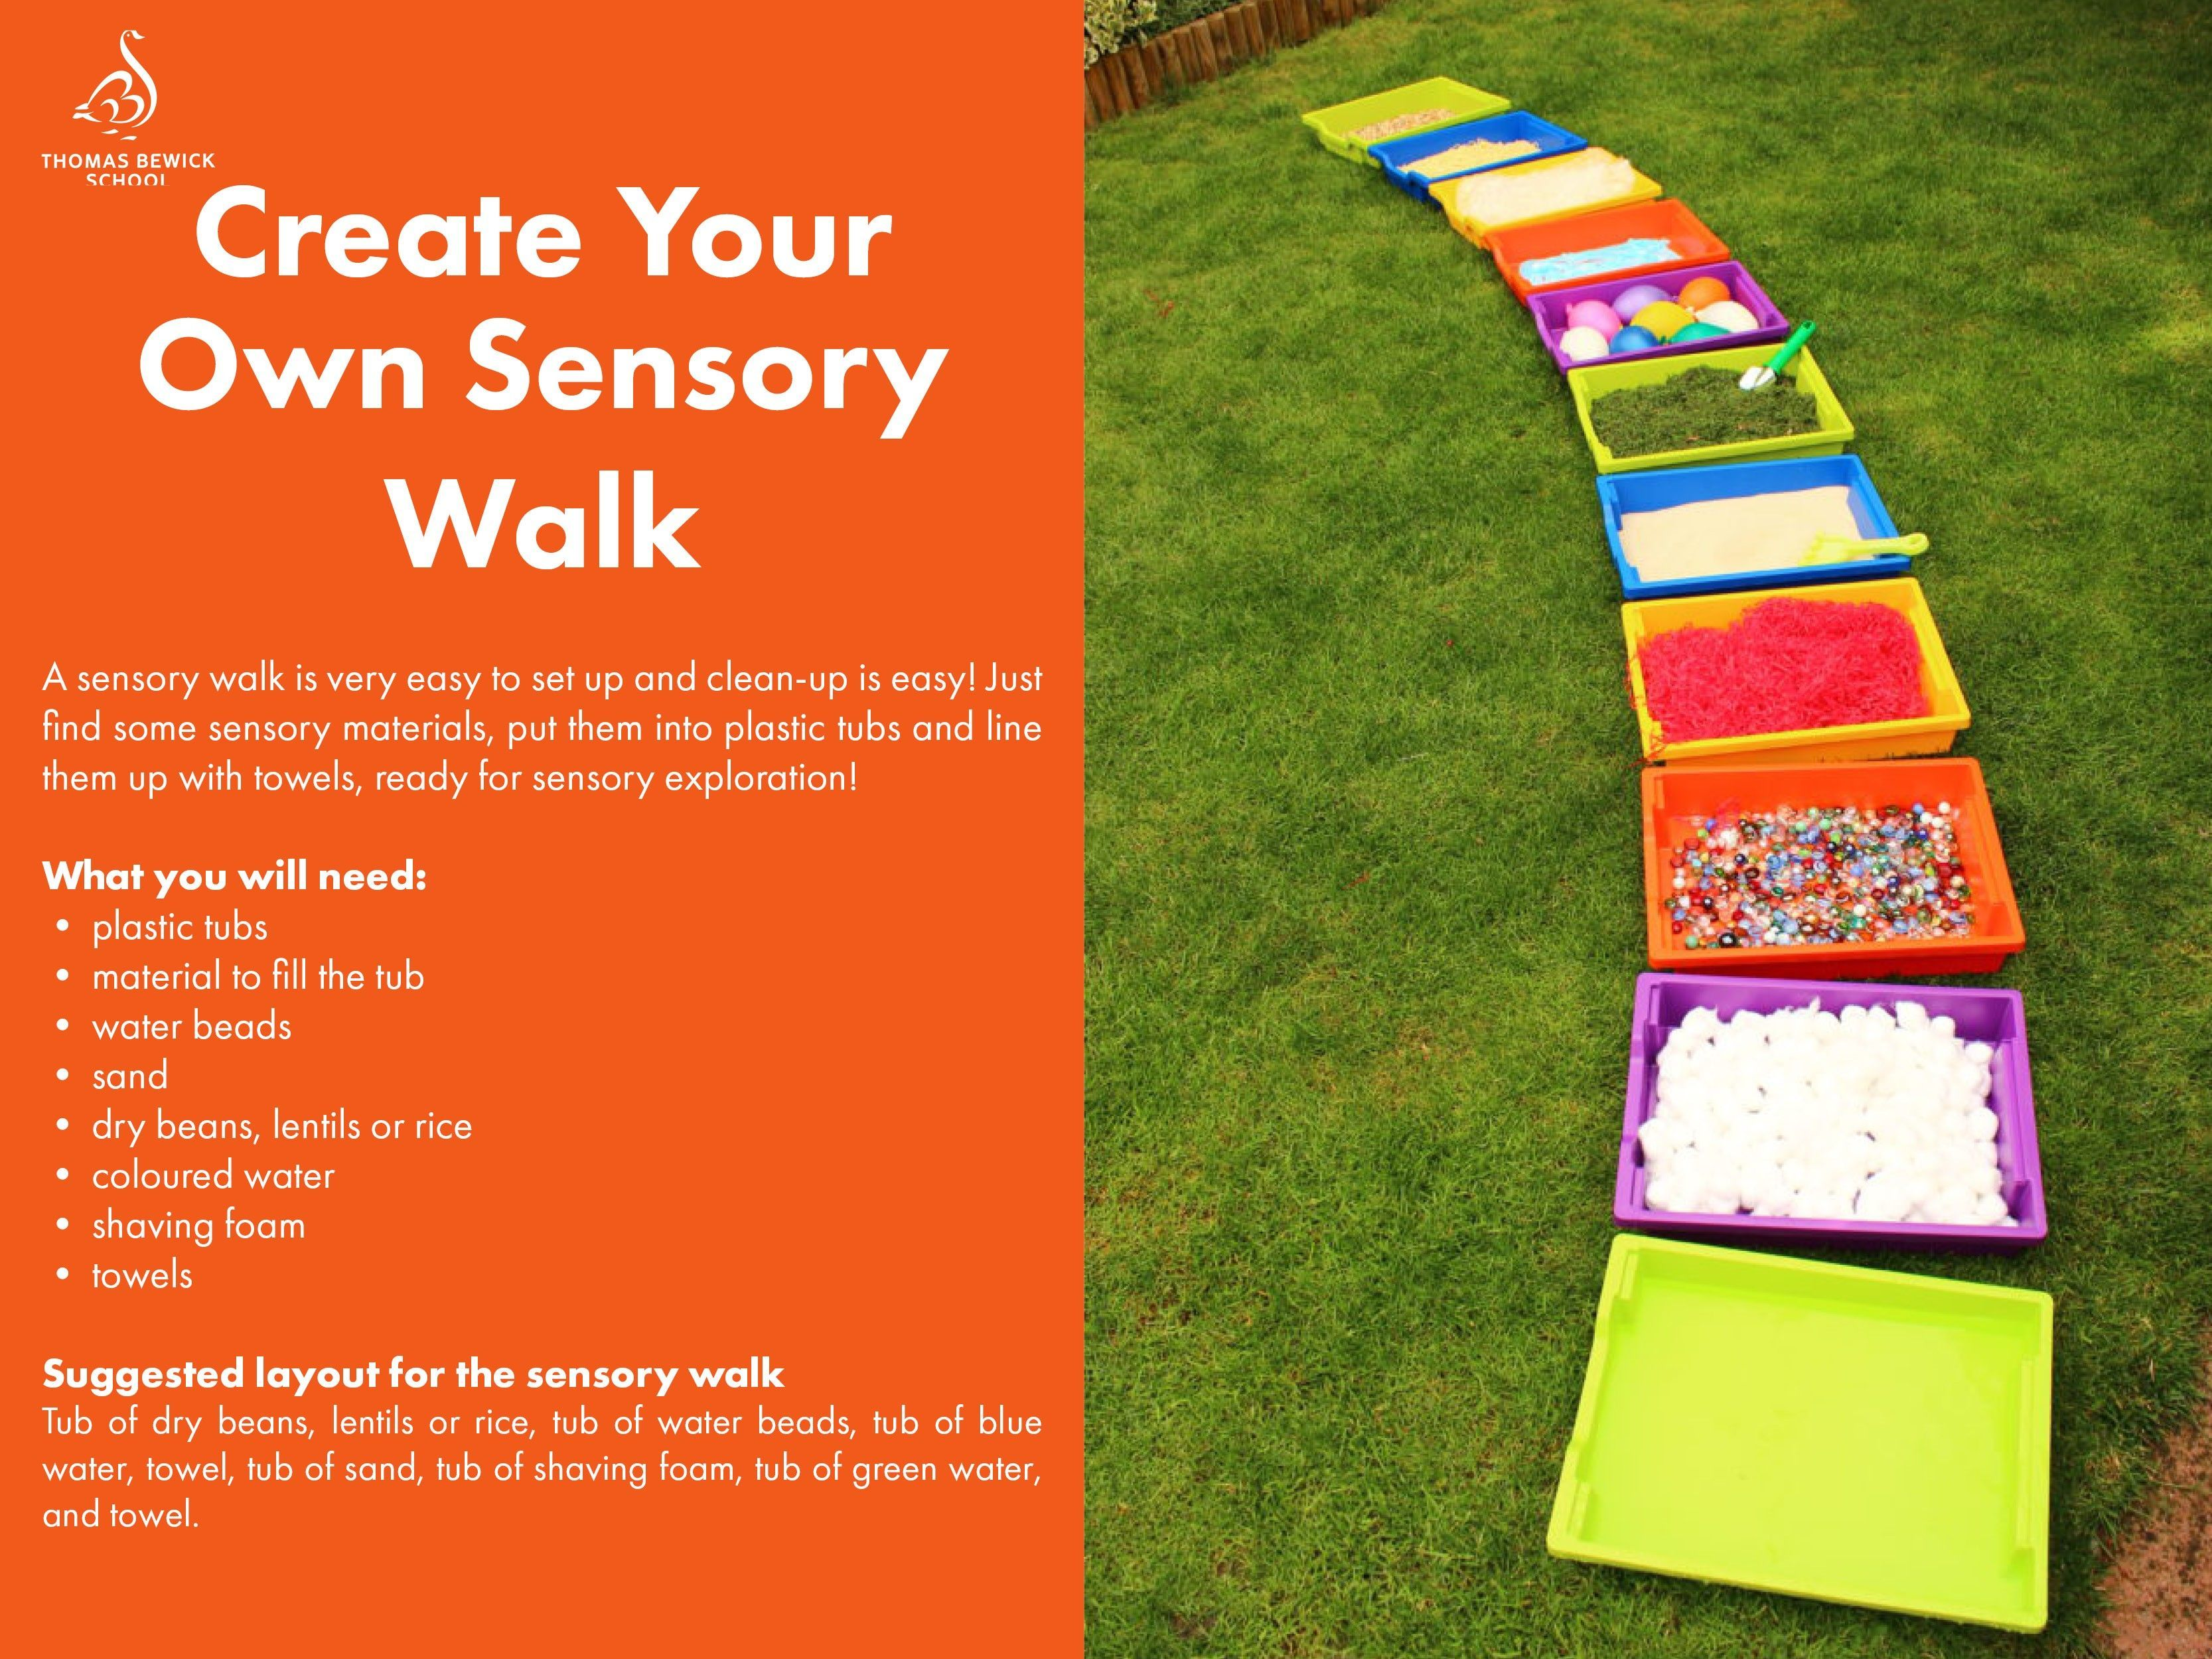 Create Your Own Sensory Walk